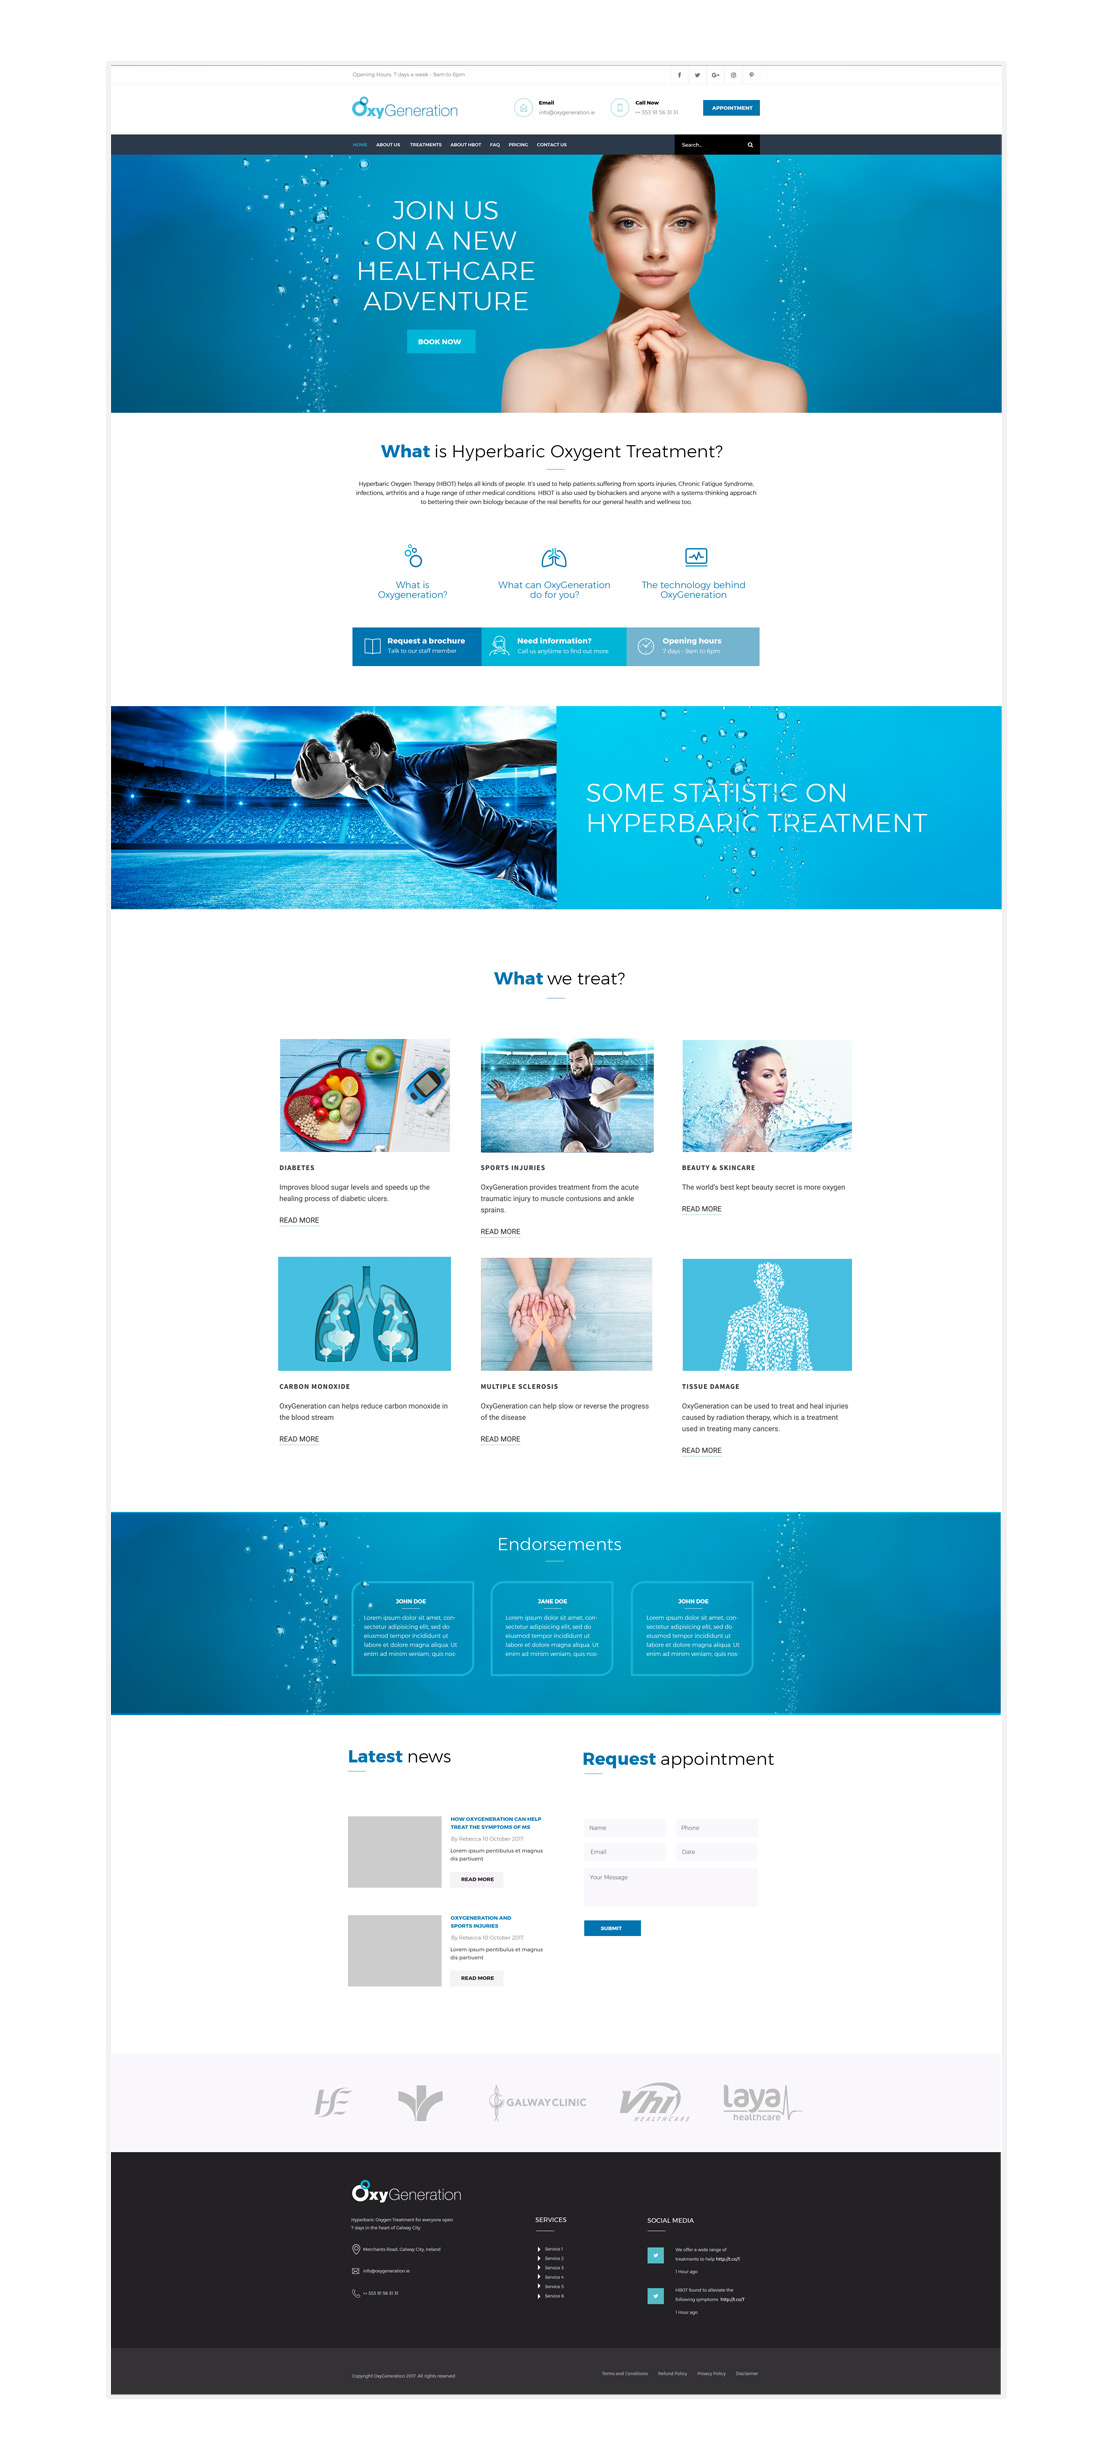 OxyGeneration main page design concept